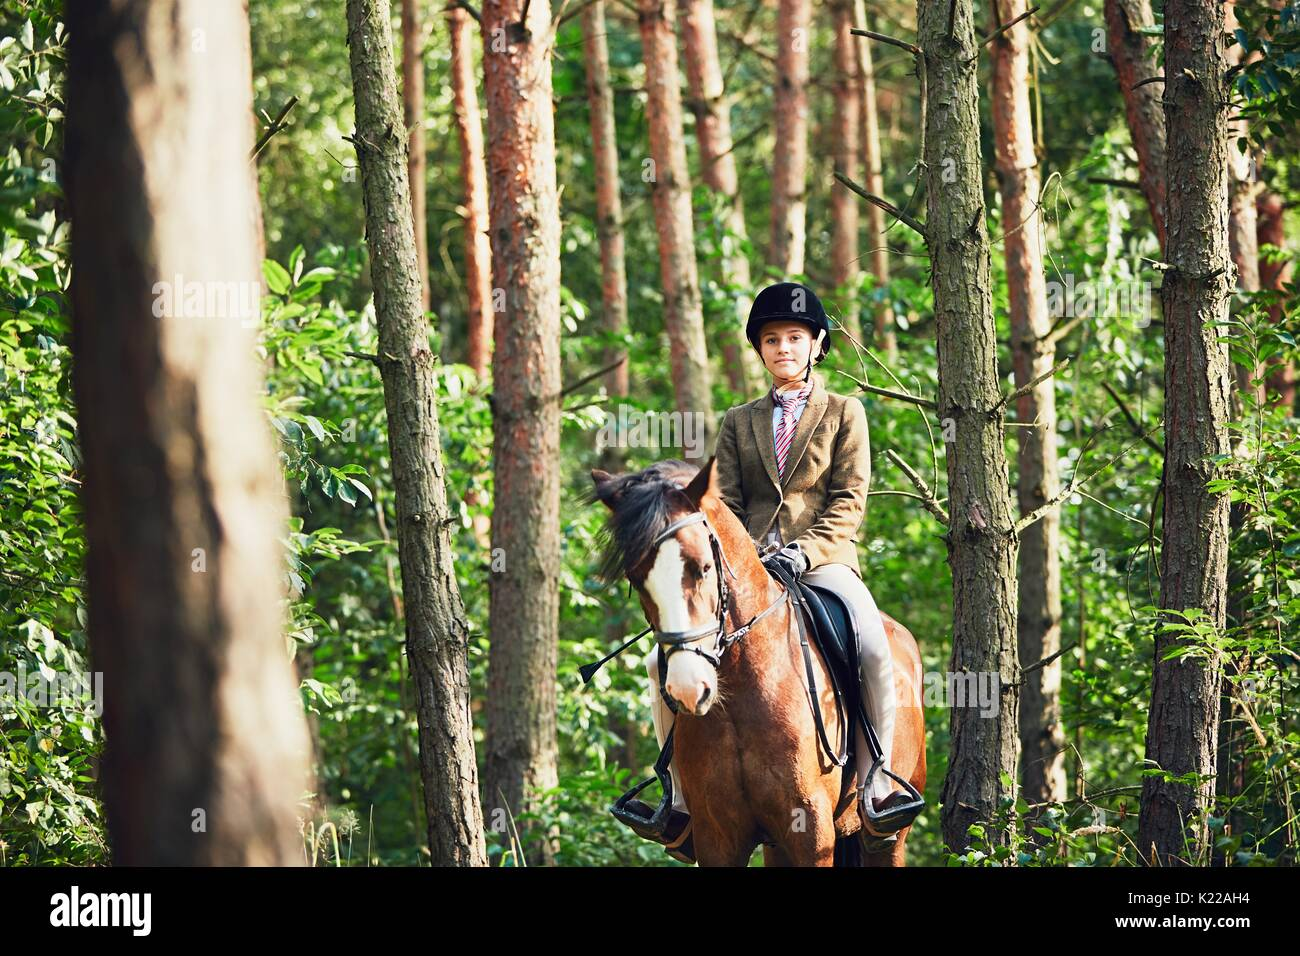 Teenage girl in formal wear riding a horse in forest. - Stock Image